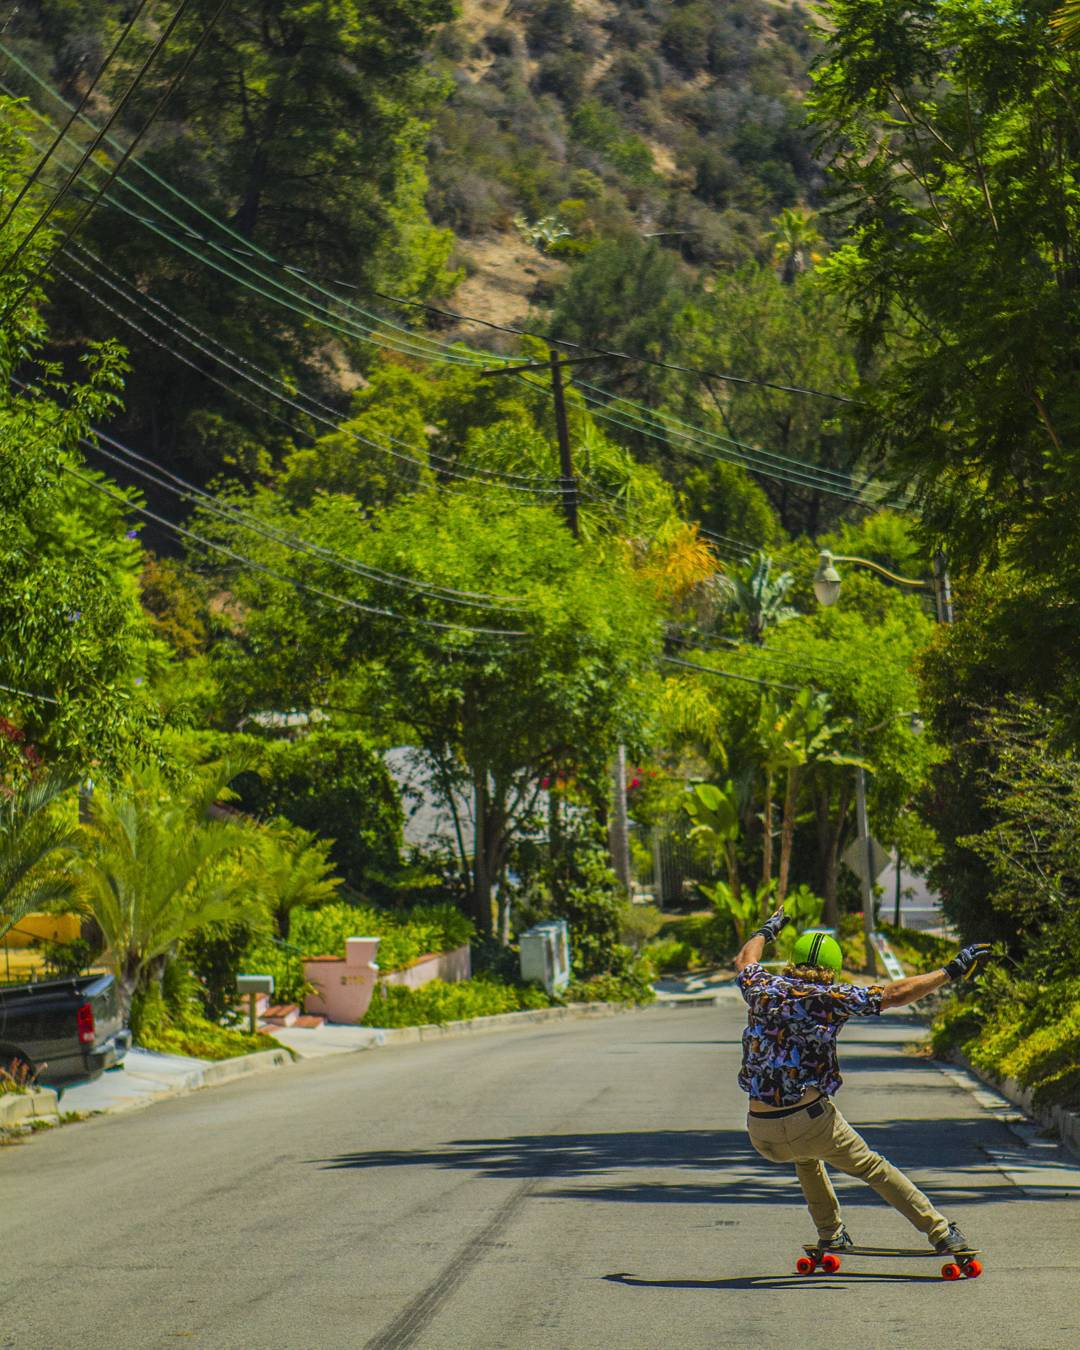 #LoadedAmbassador @danielfissmer checks his #CarbonTesseract as he descends into the L.A. jungle, looking for a cougar.  Photo: @notjustinpreston  #LoadedBoards #Tesseract #Orangatang